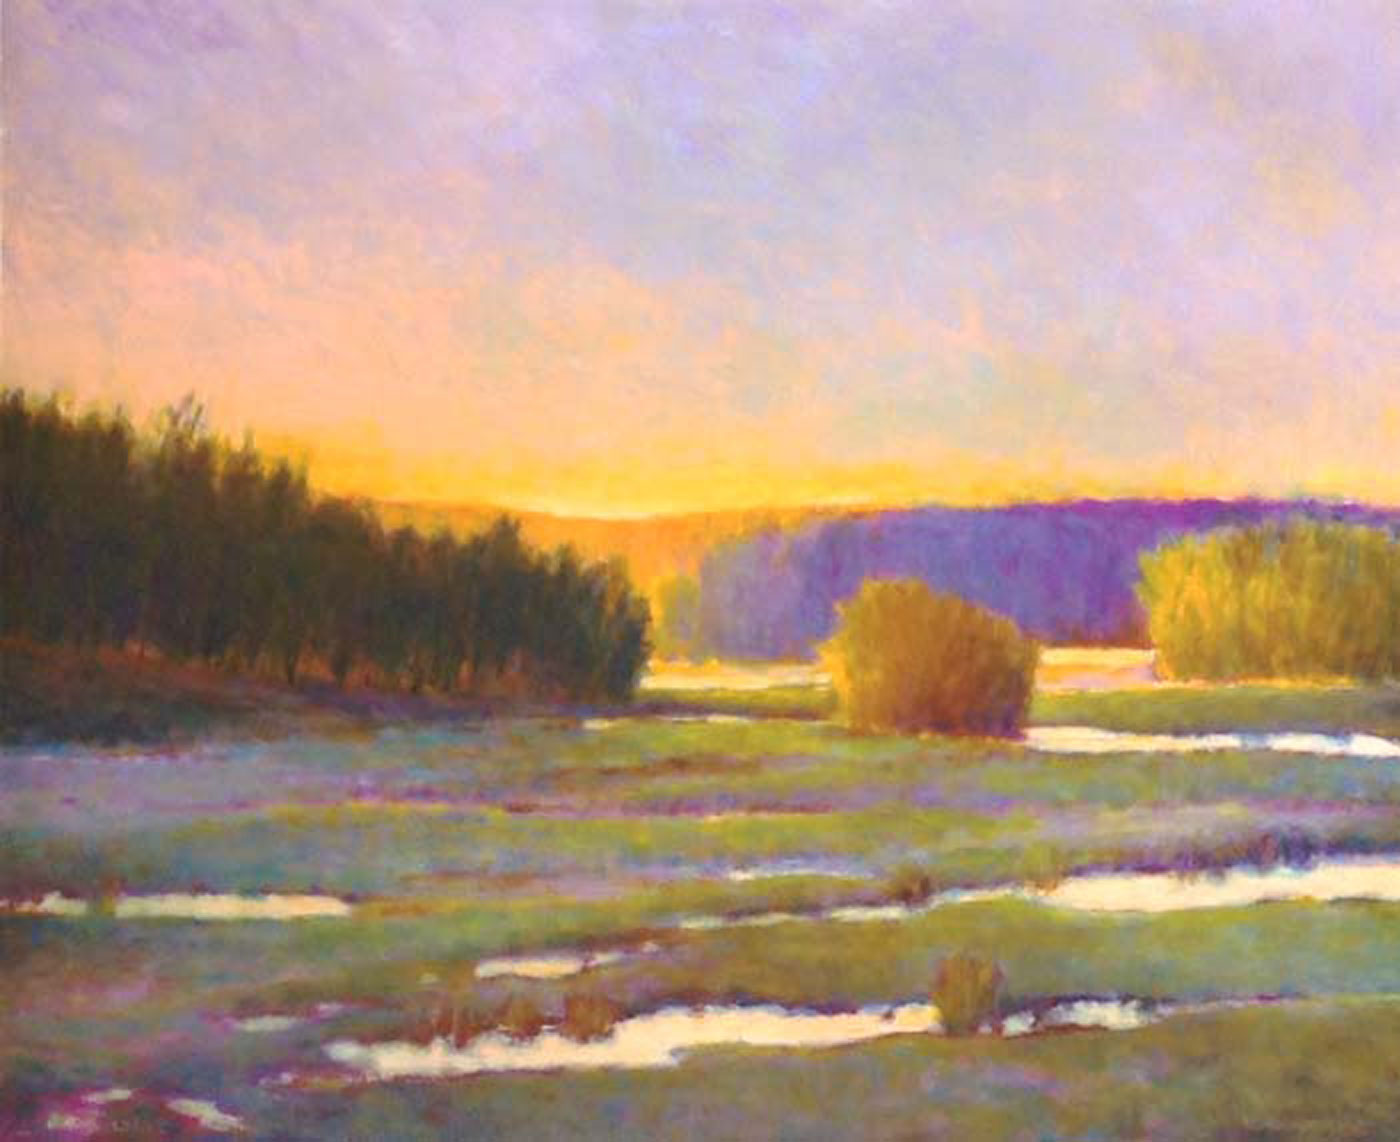 Marsh Green Gold by Ken Elliott featured at Renjeau Galleries in Natick, Mass.